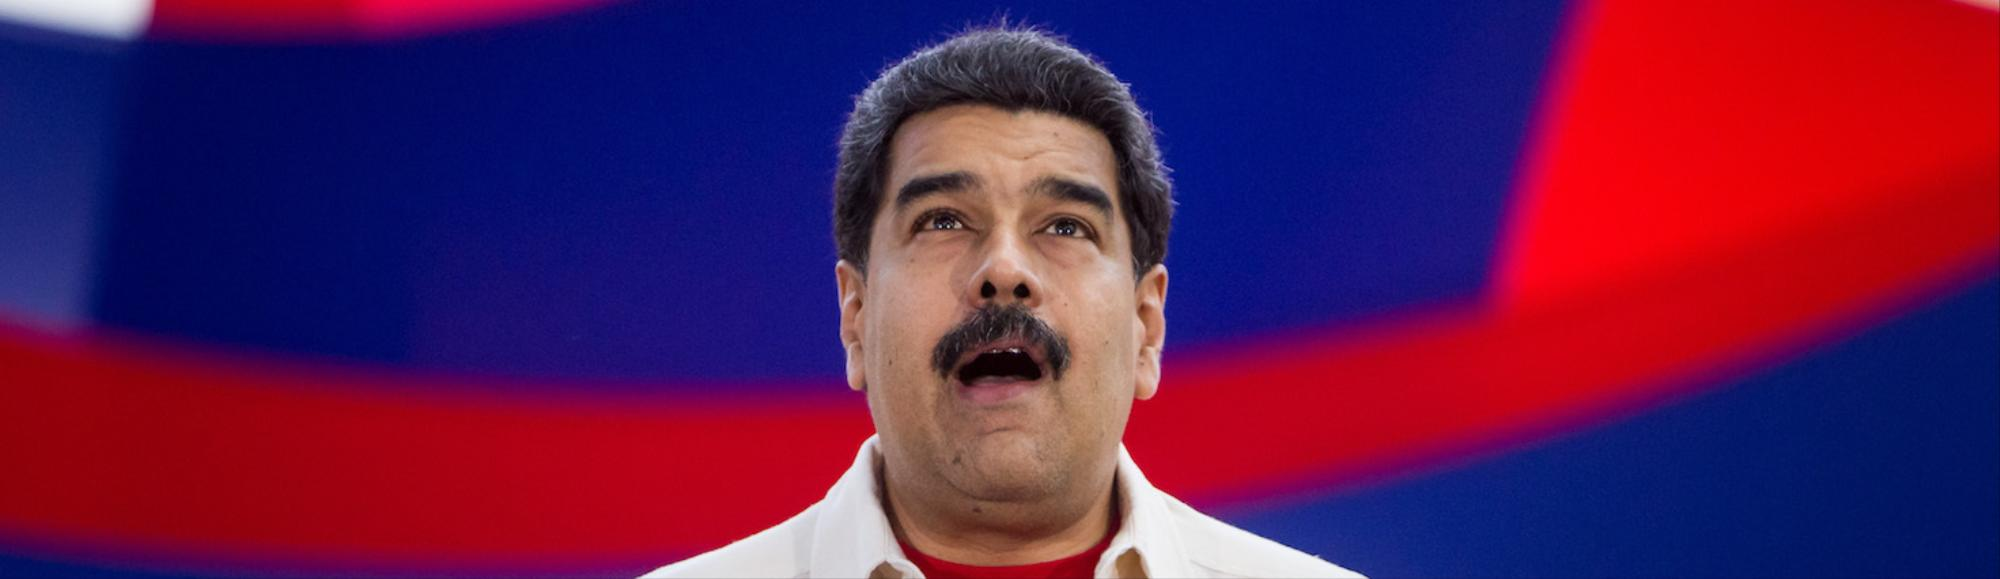 Venezuela has a new 'forced labor' law that can require people to work in fields